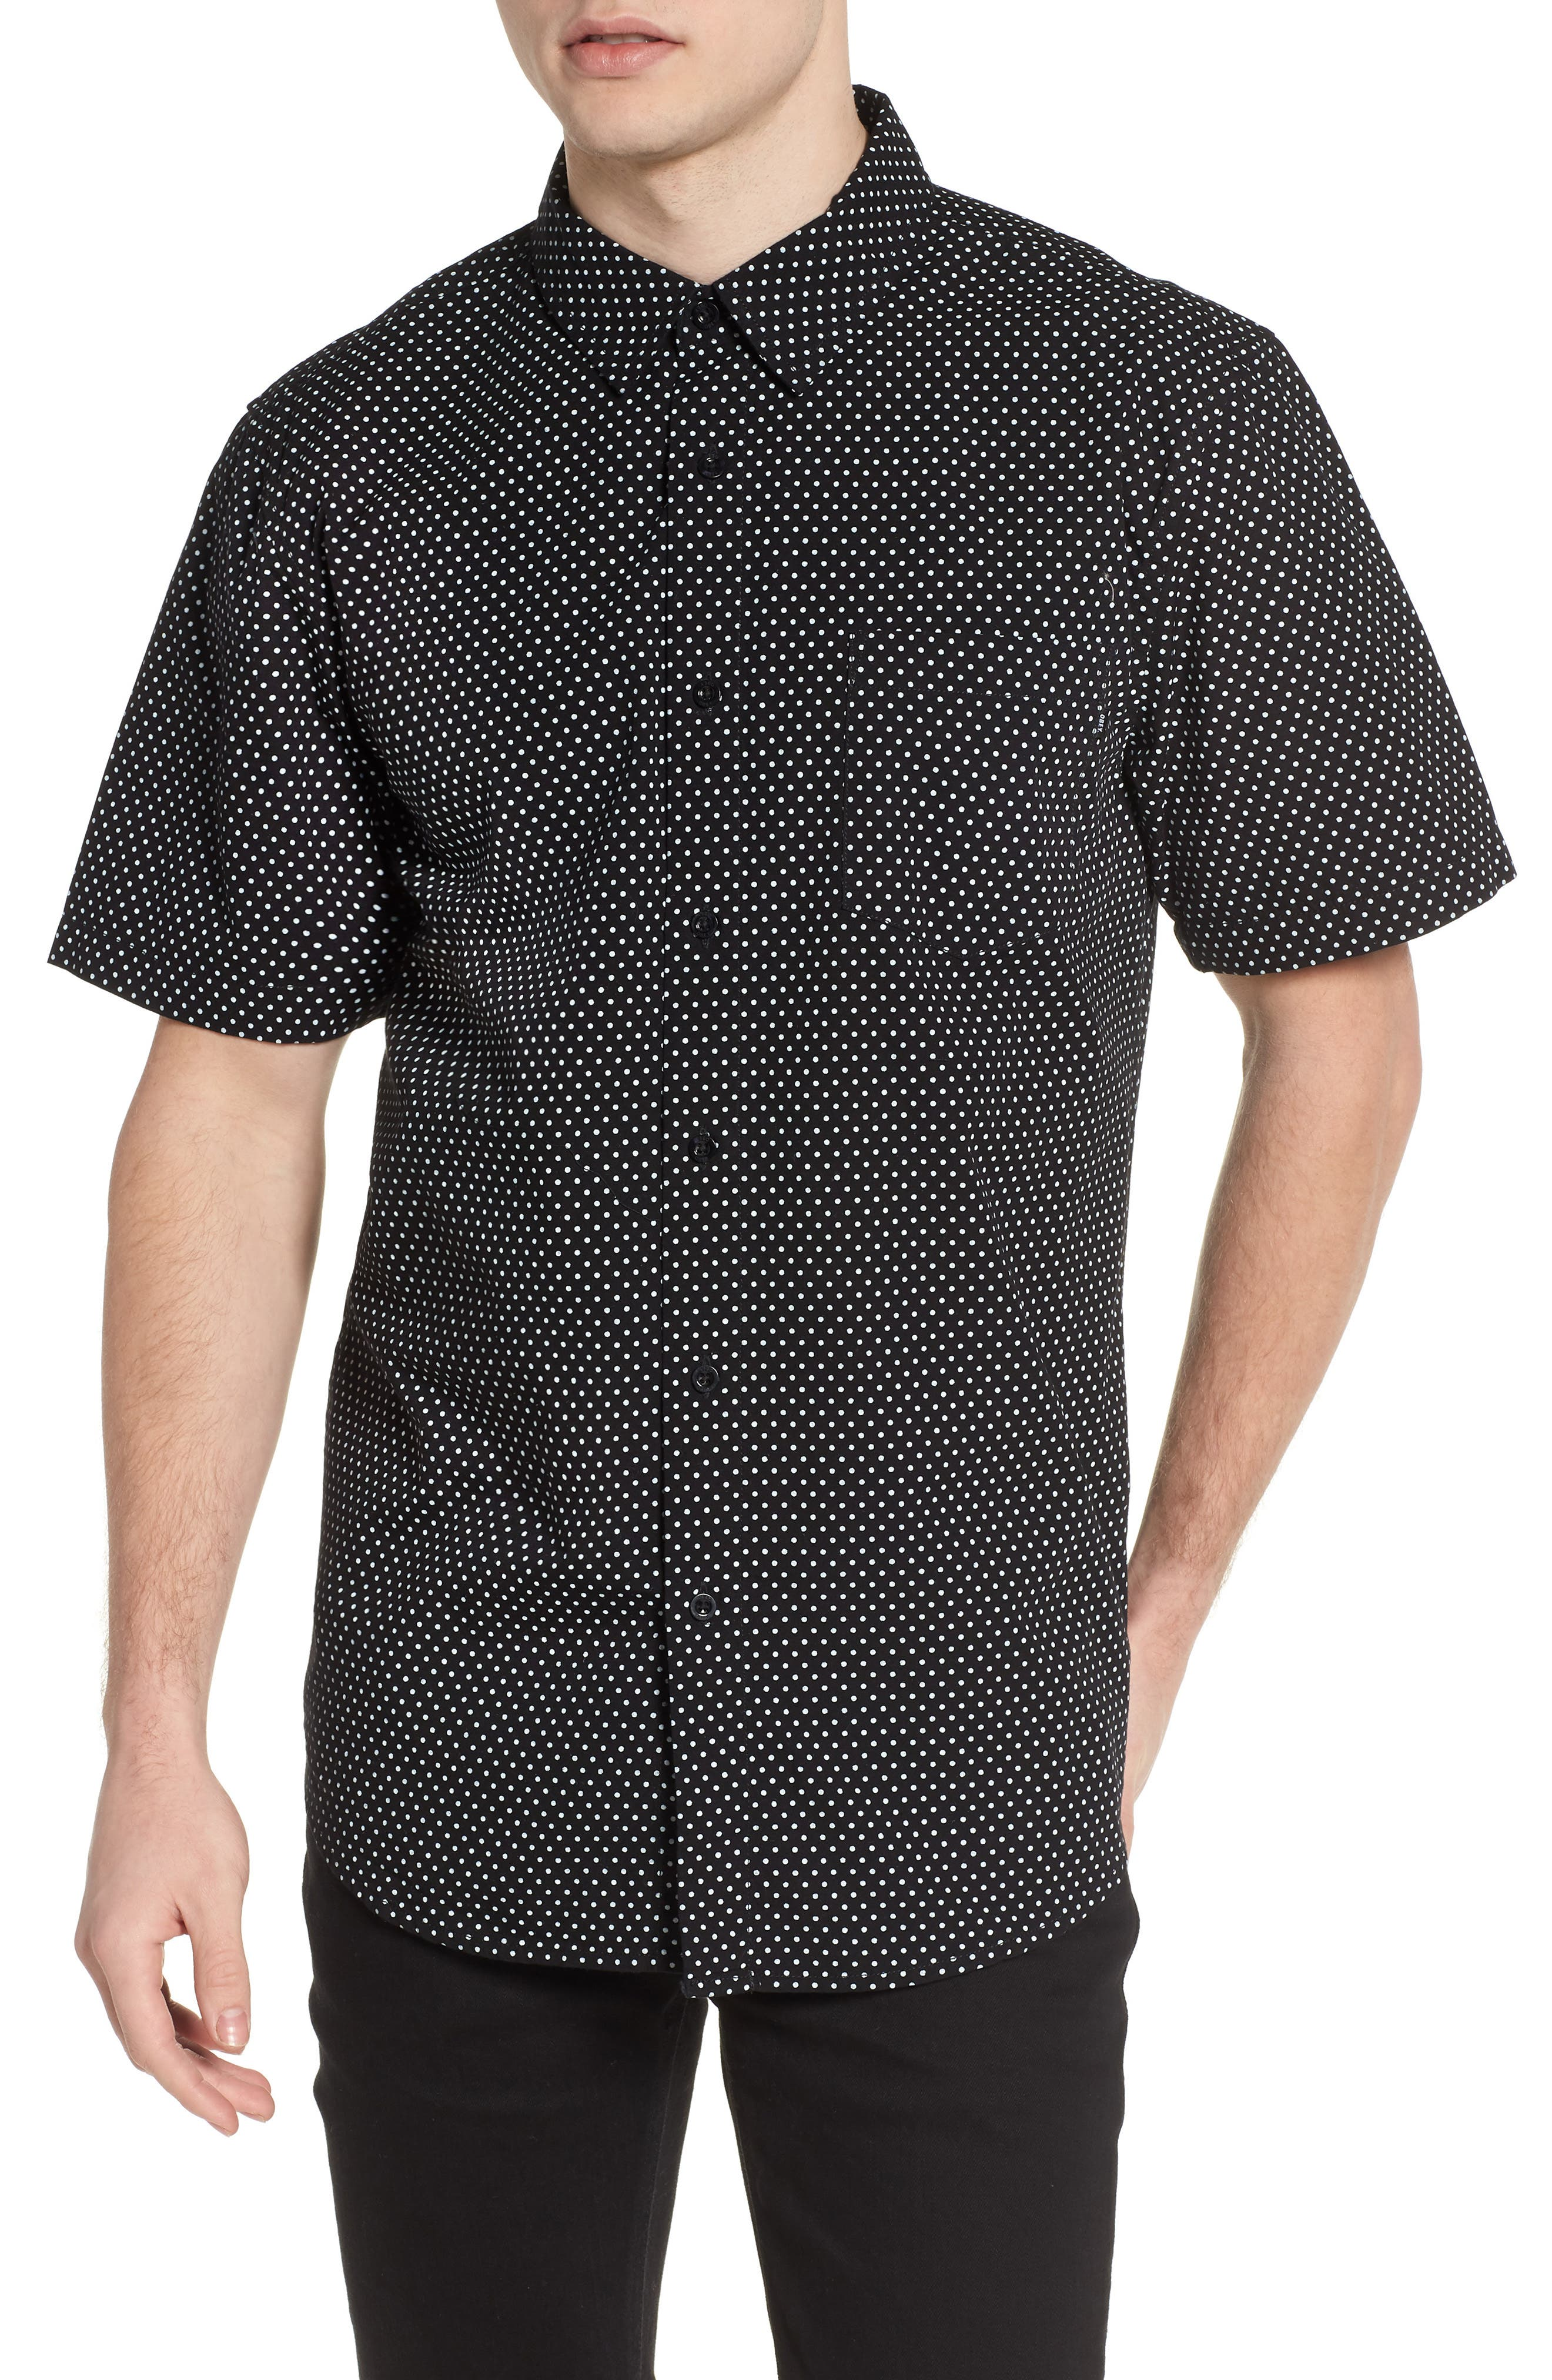 Brozwell Short Sleeve Shirt,                         Main,                         color, Black Multi